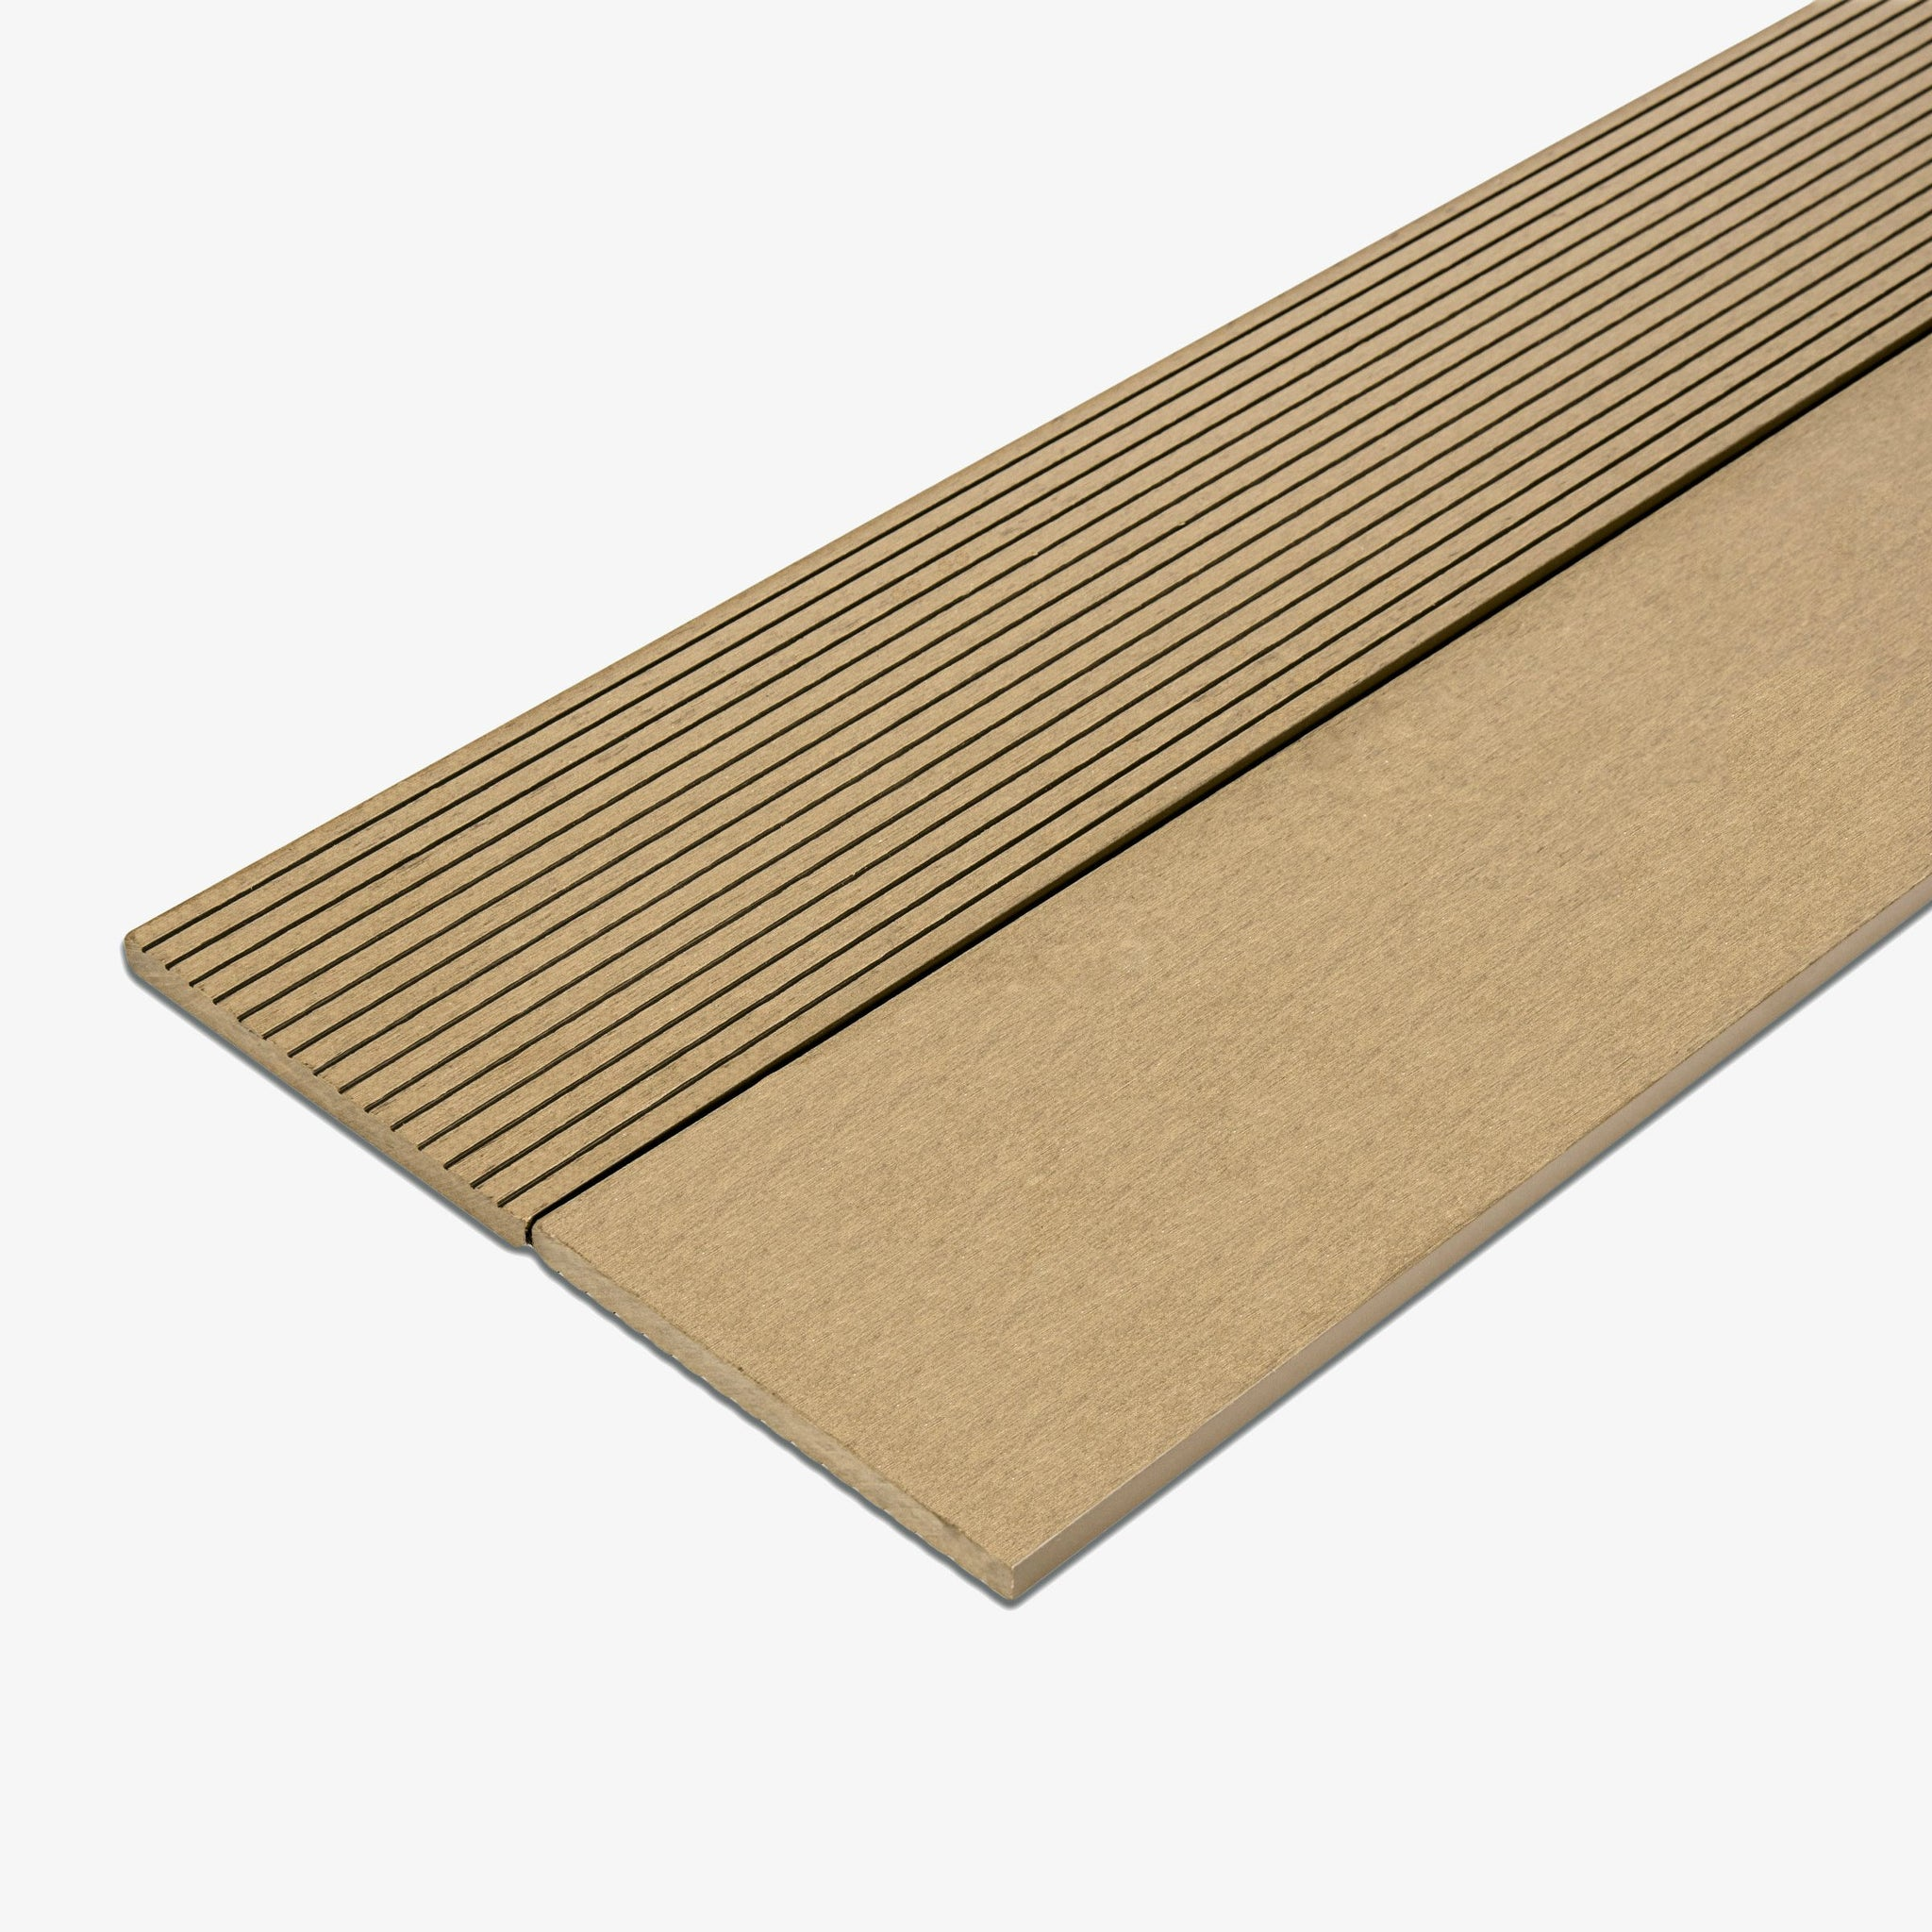 Composite Deck Fascia Board - Oak | HYPERION Decking